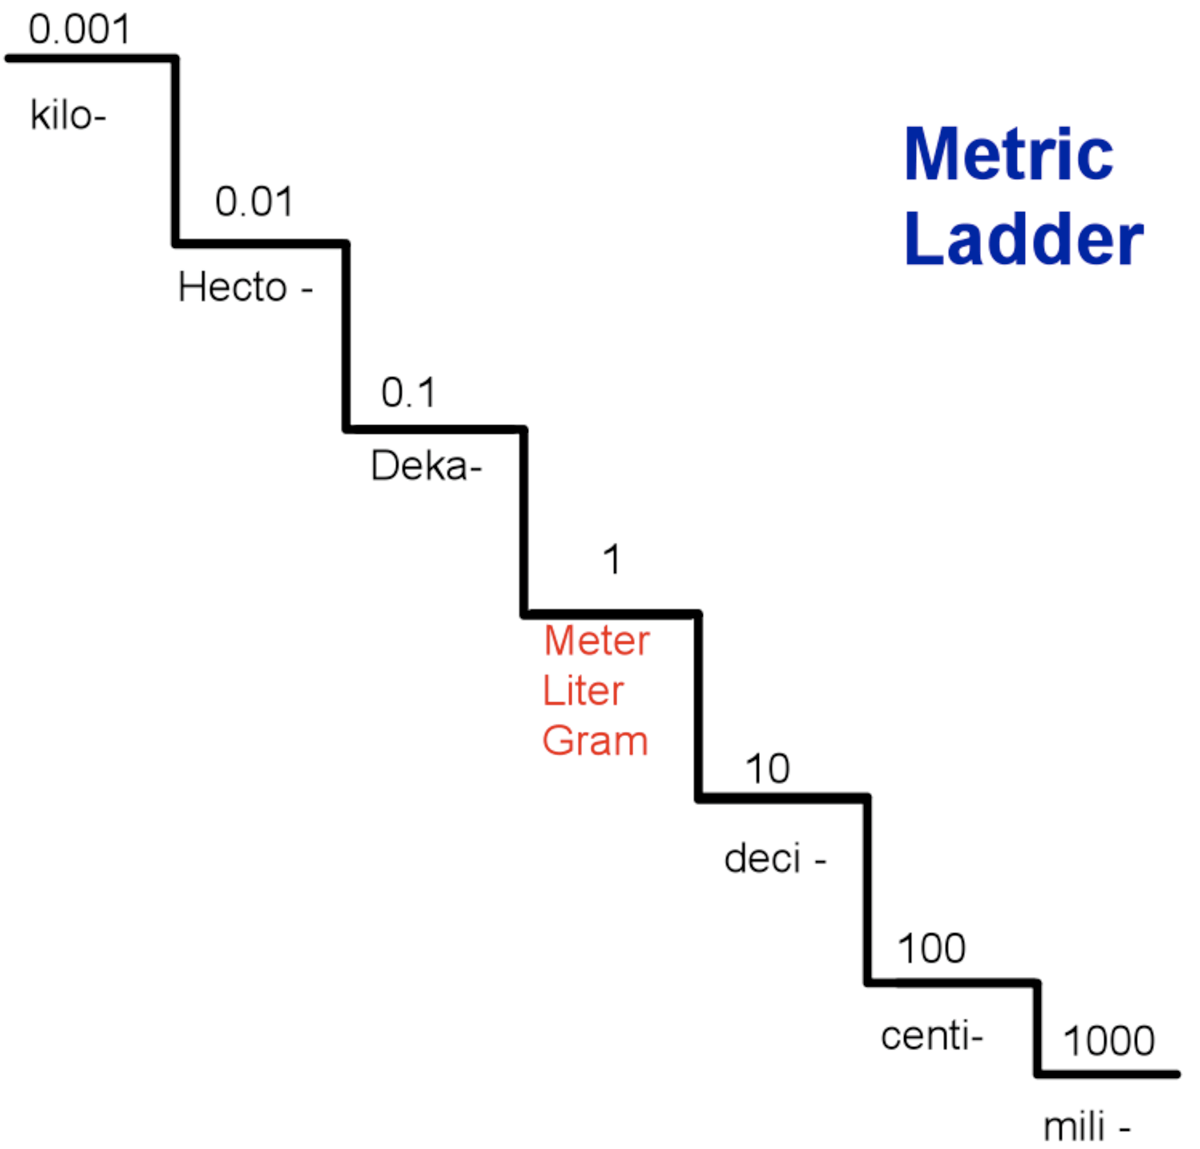 Converting Within The Metric System Using The Metric Staircase